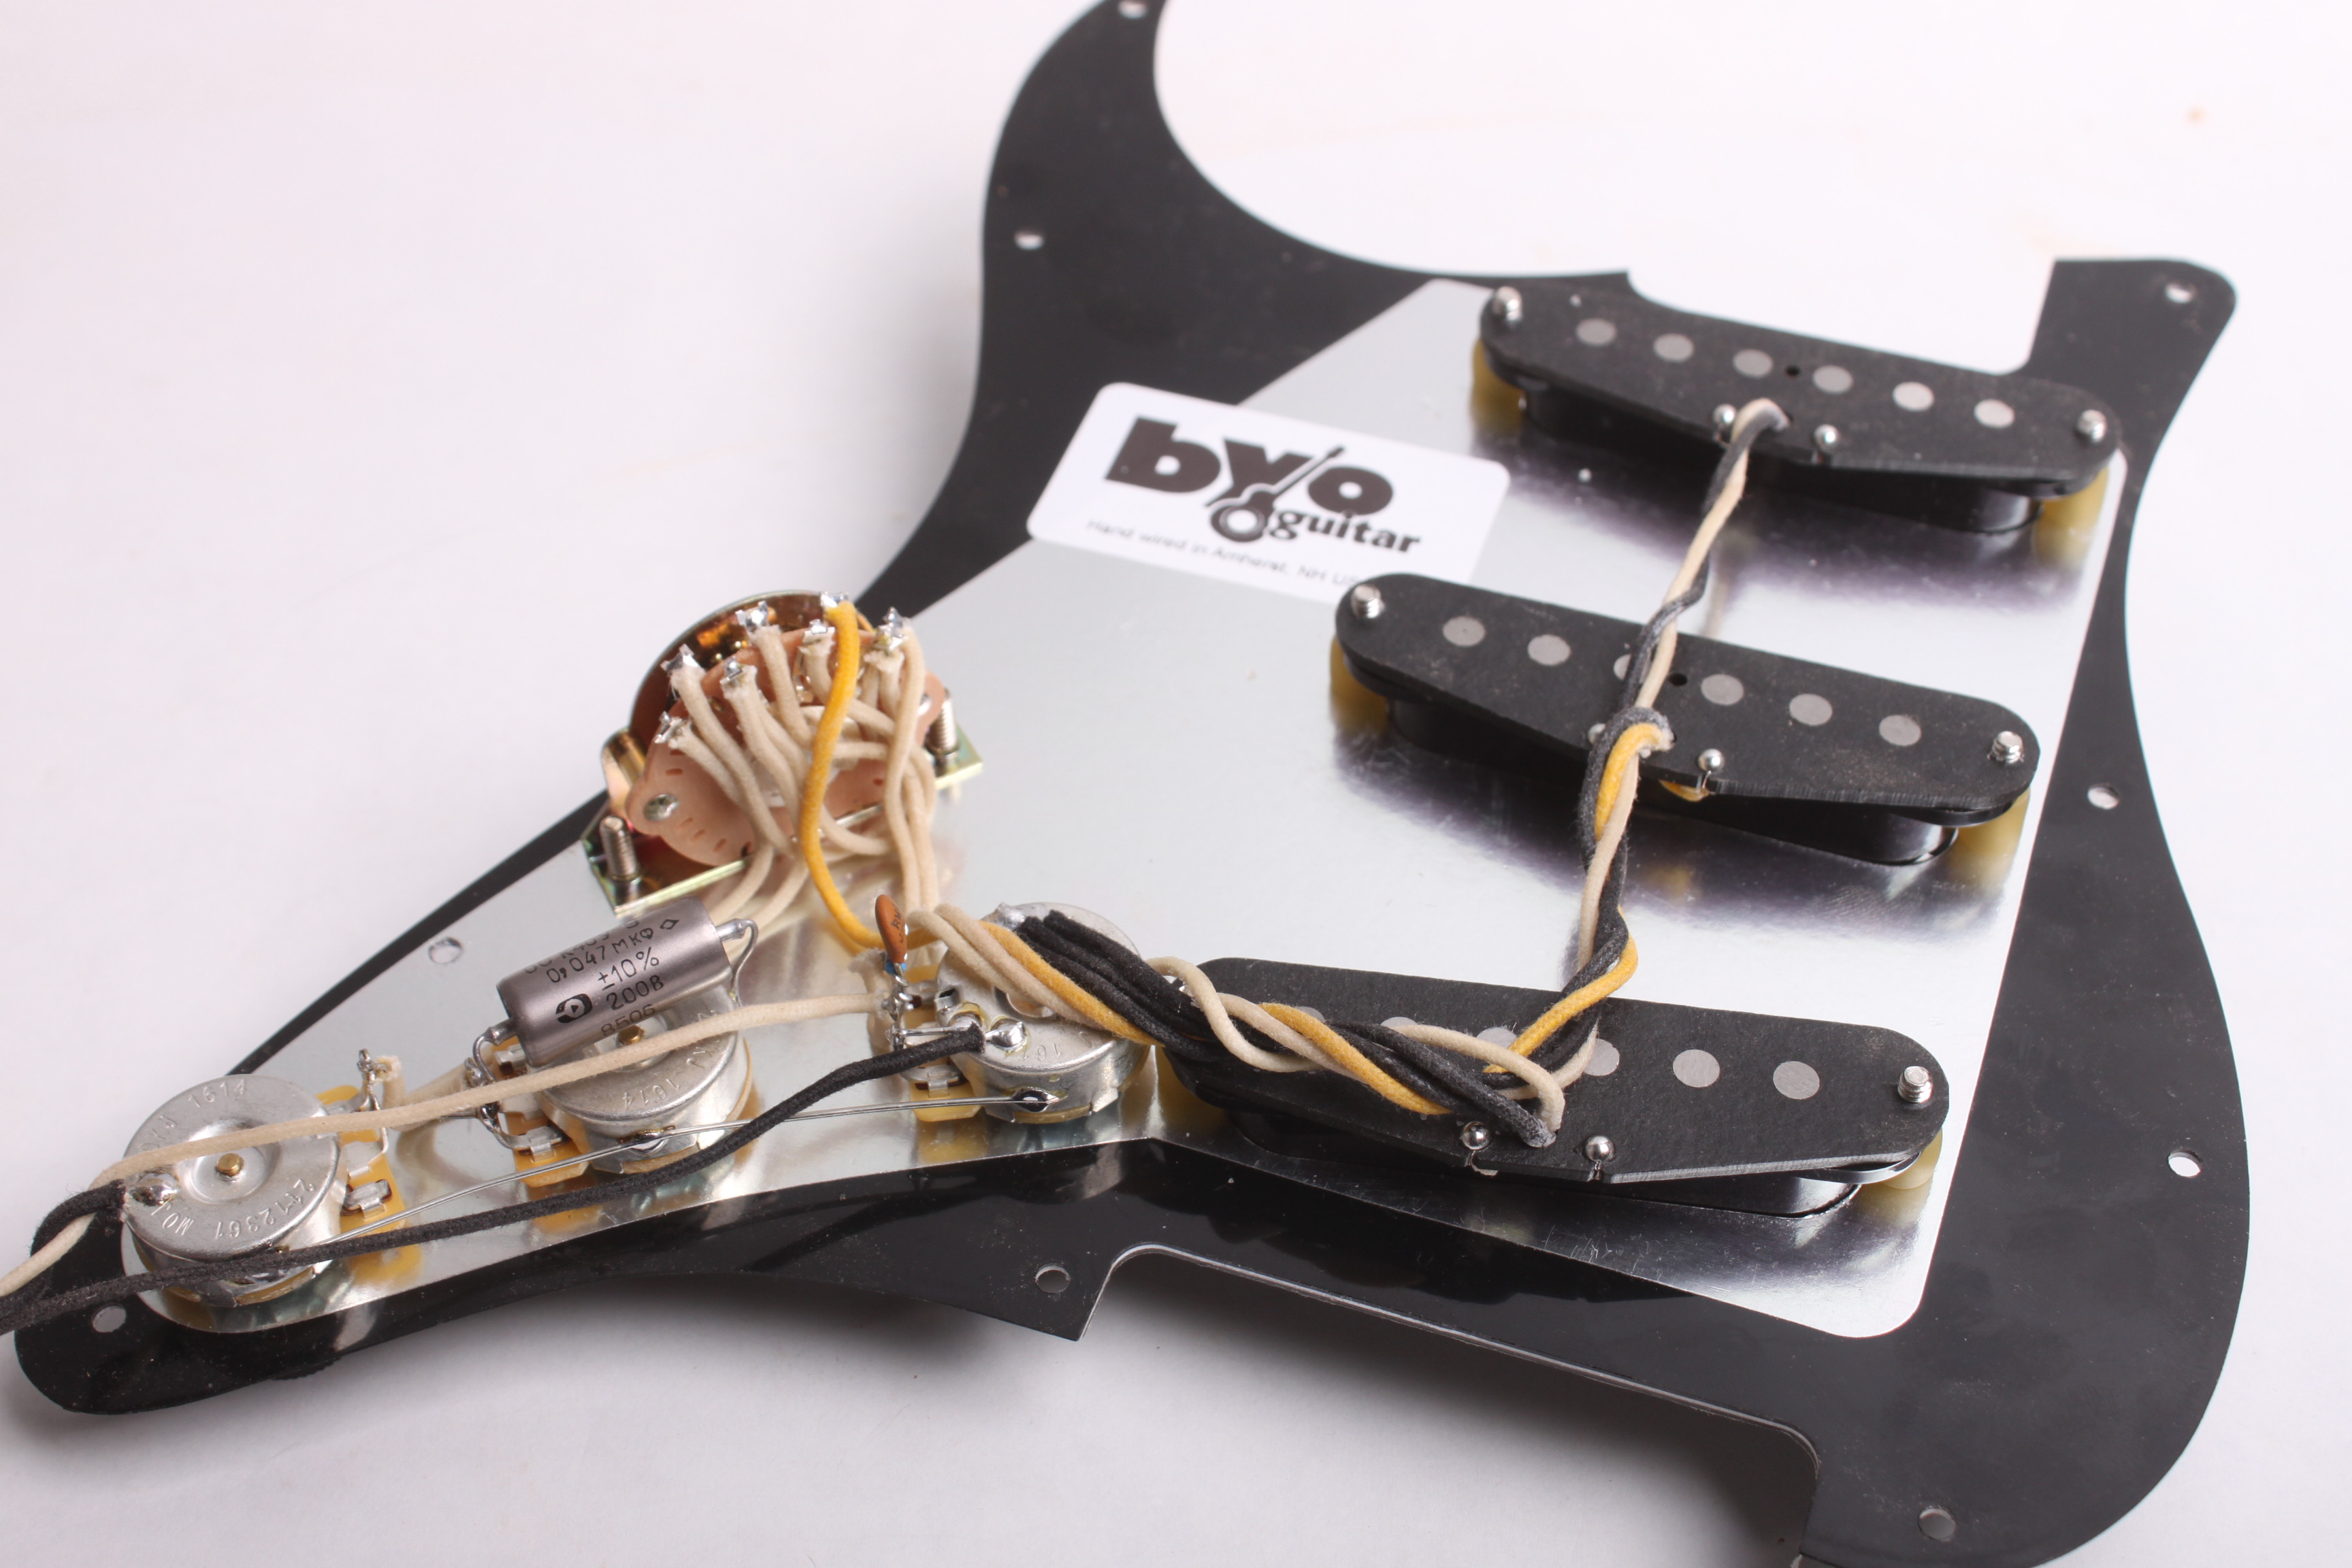 Vintage Pre-Wired Pickguard - Guitar bodies and kits from BYOGuitar